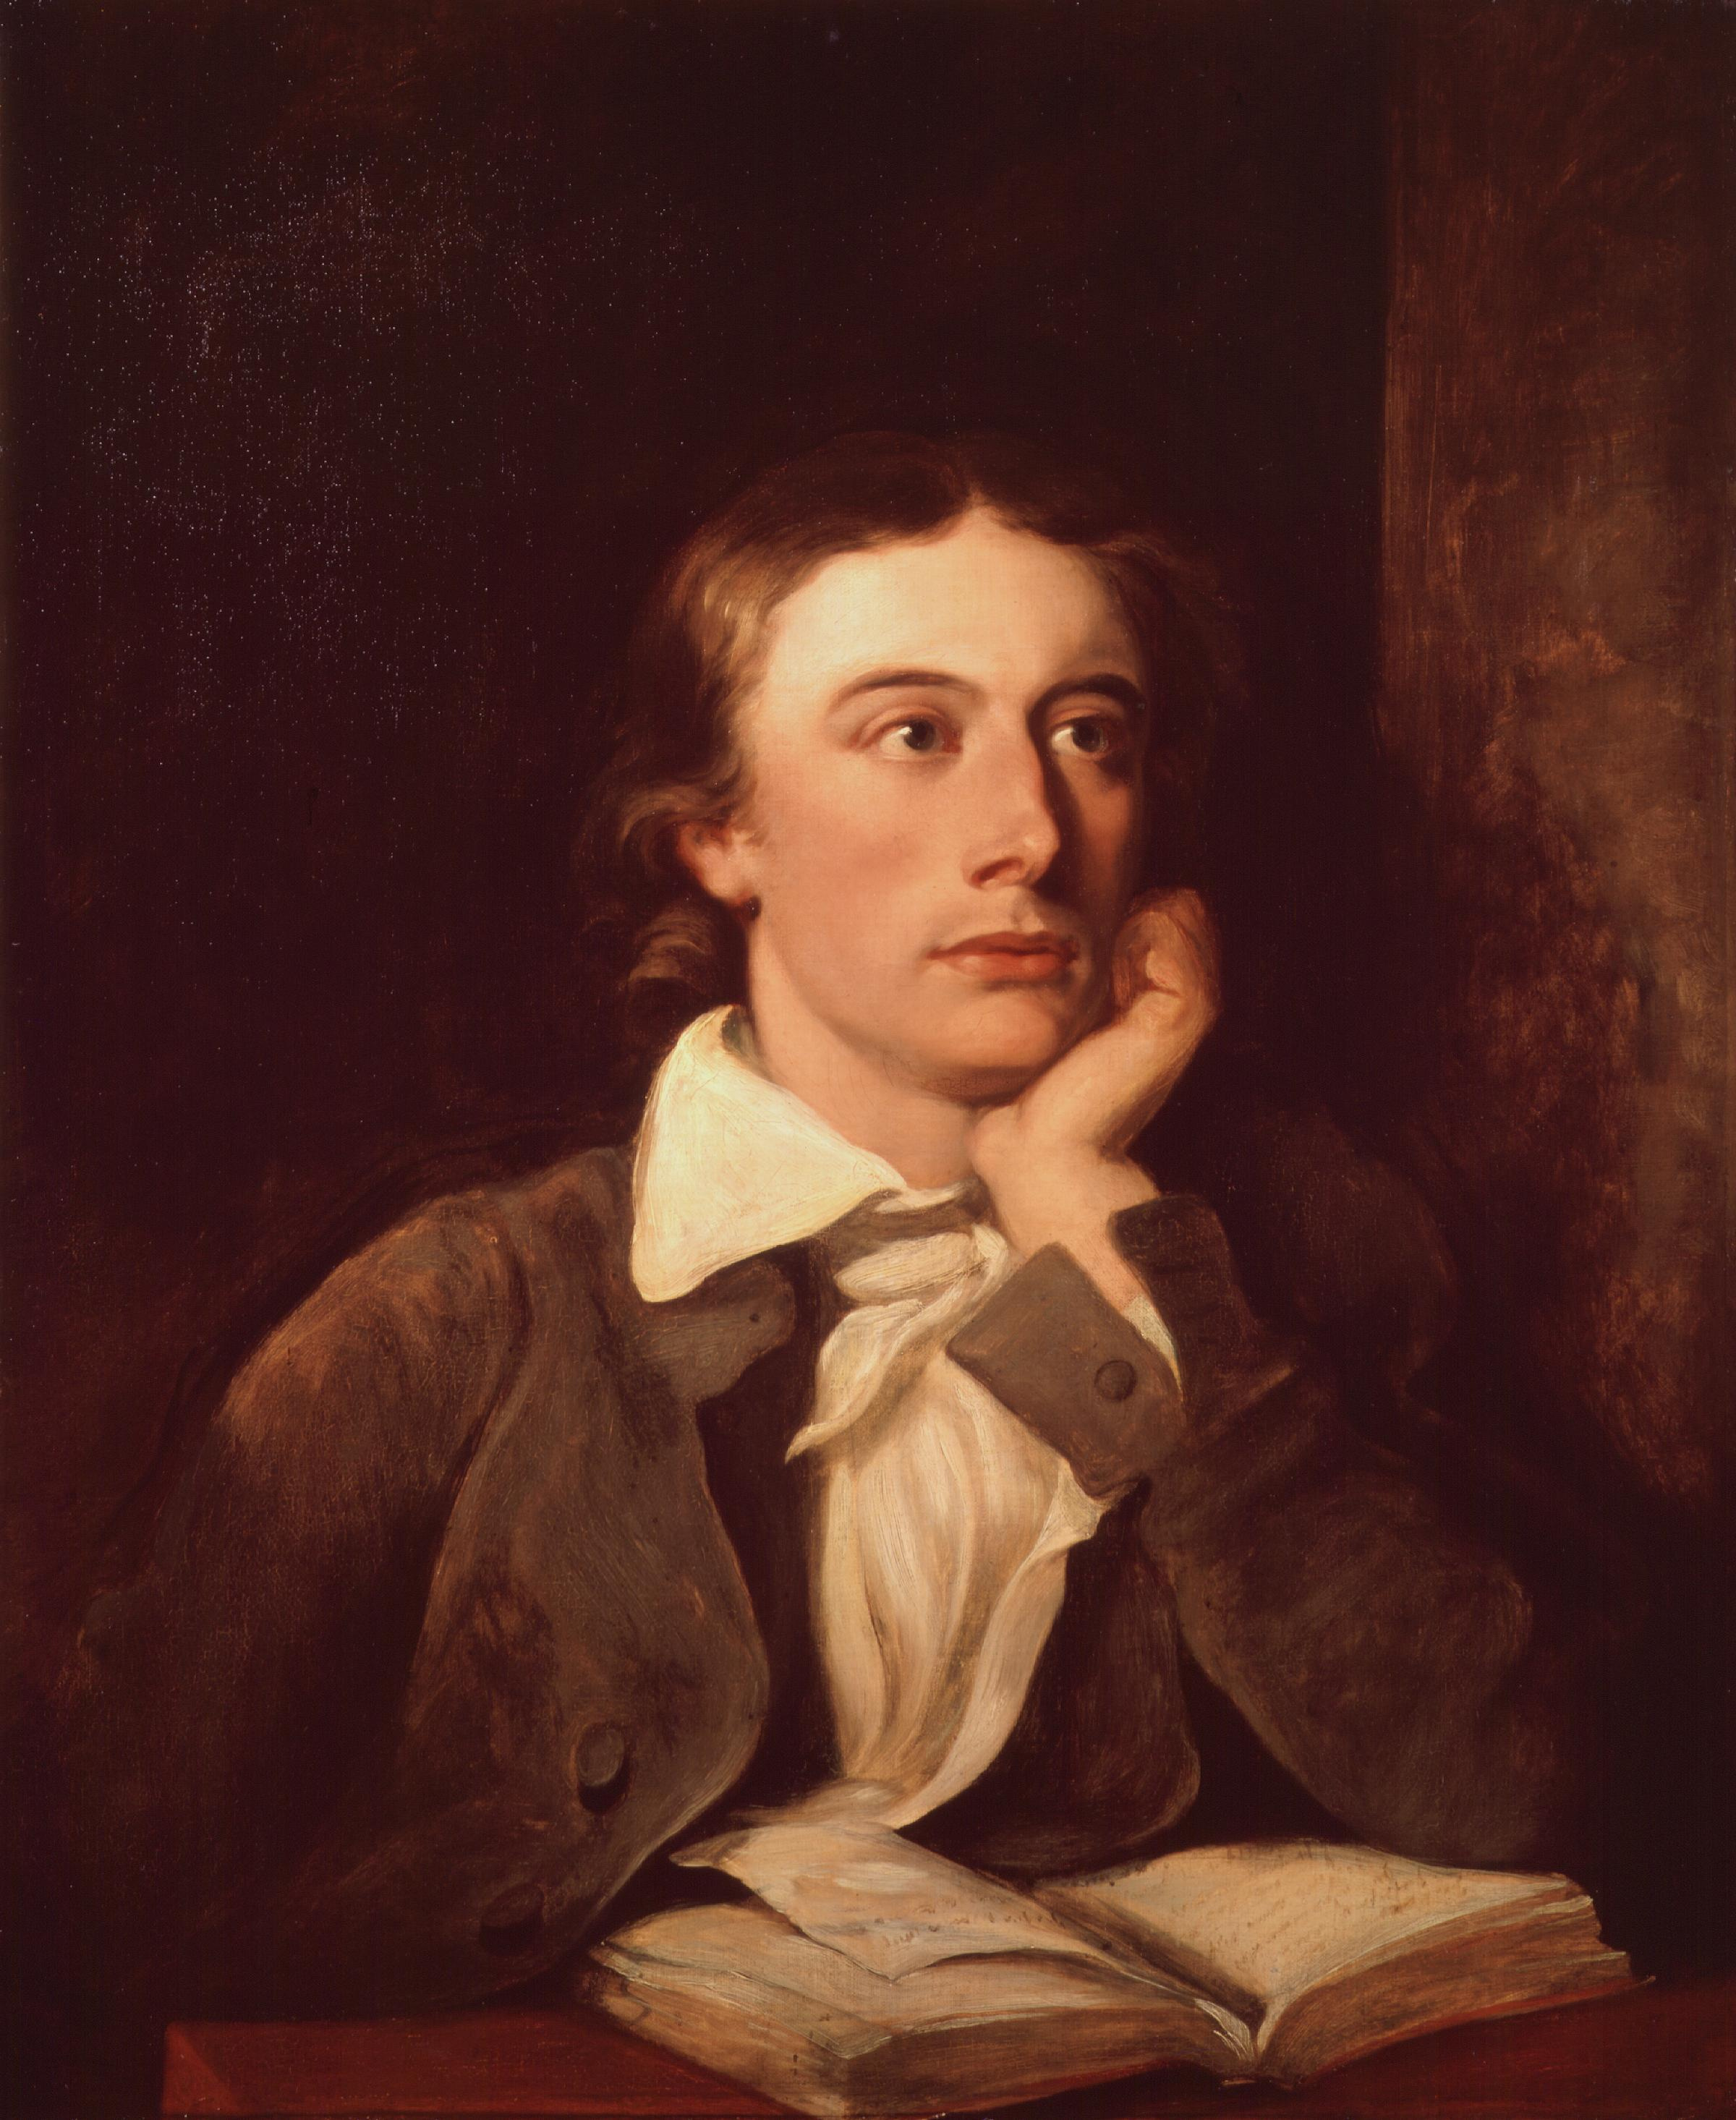 #Poetry Moment: Keats, Ode on Melancholy